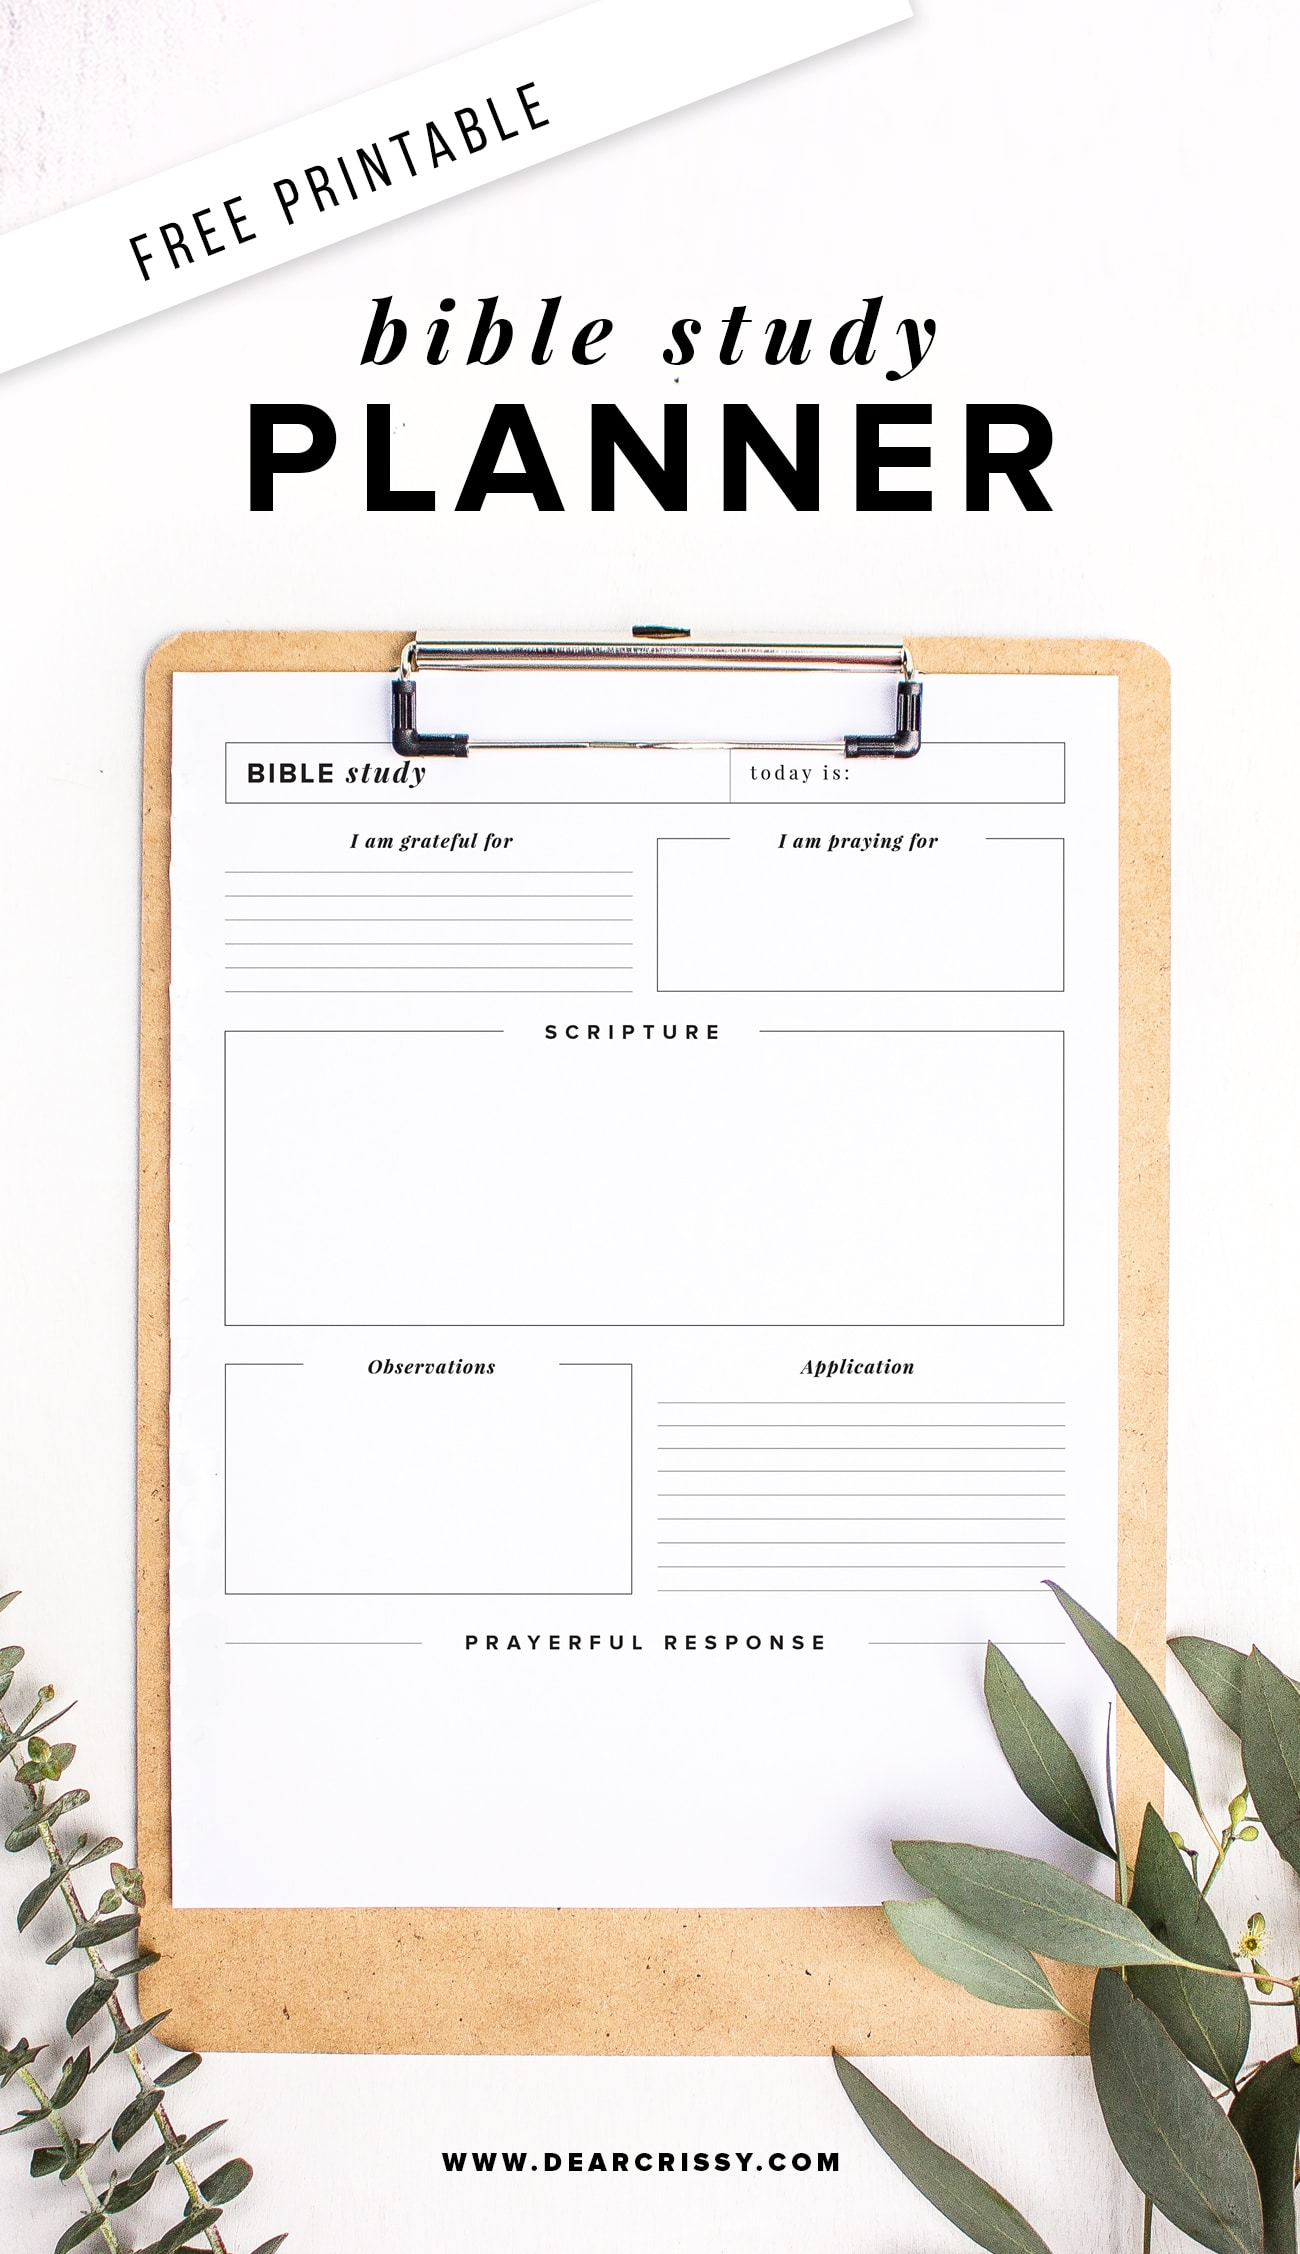 Free Printable Bible Study Planner - Soap Method Bible Study Worksheet! | Free Printable Bible Study Worksheets For Adults